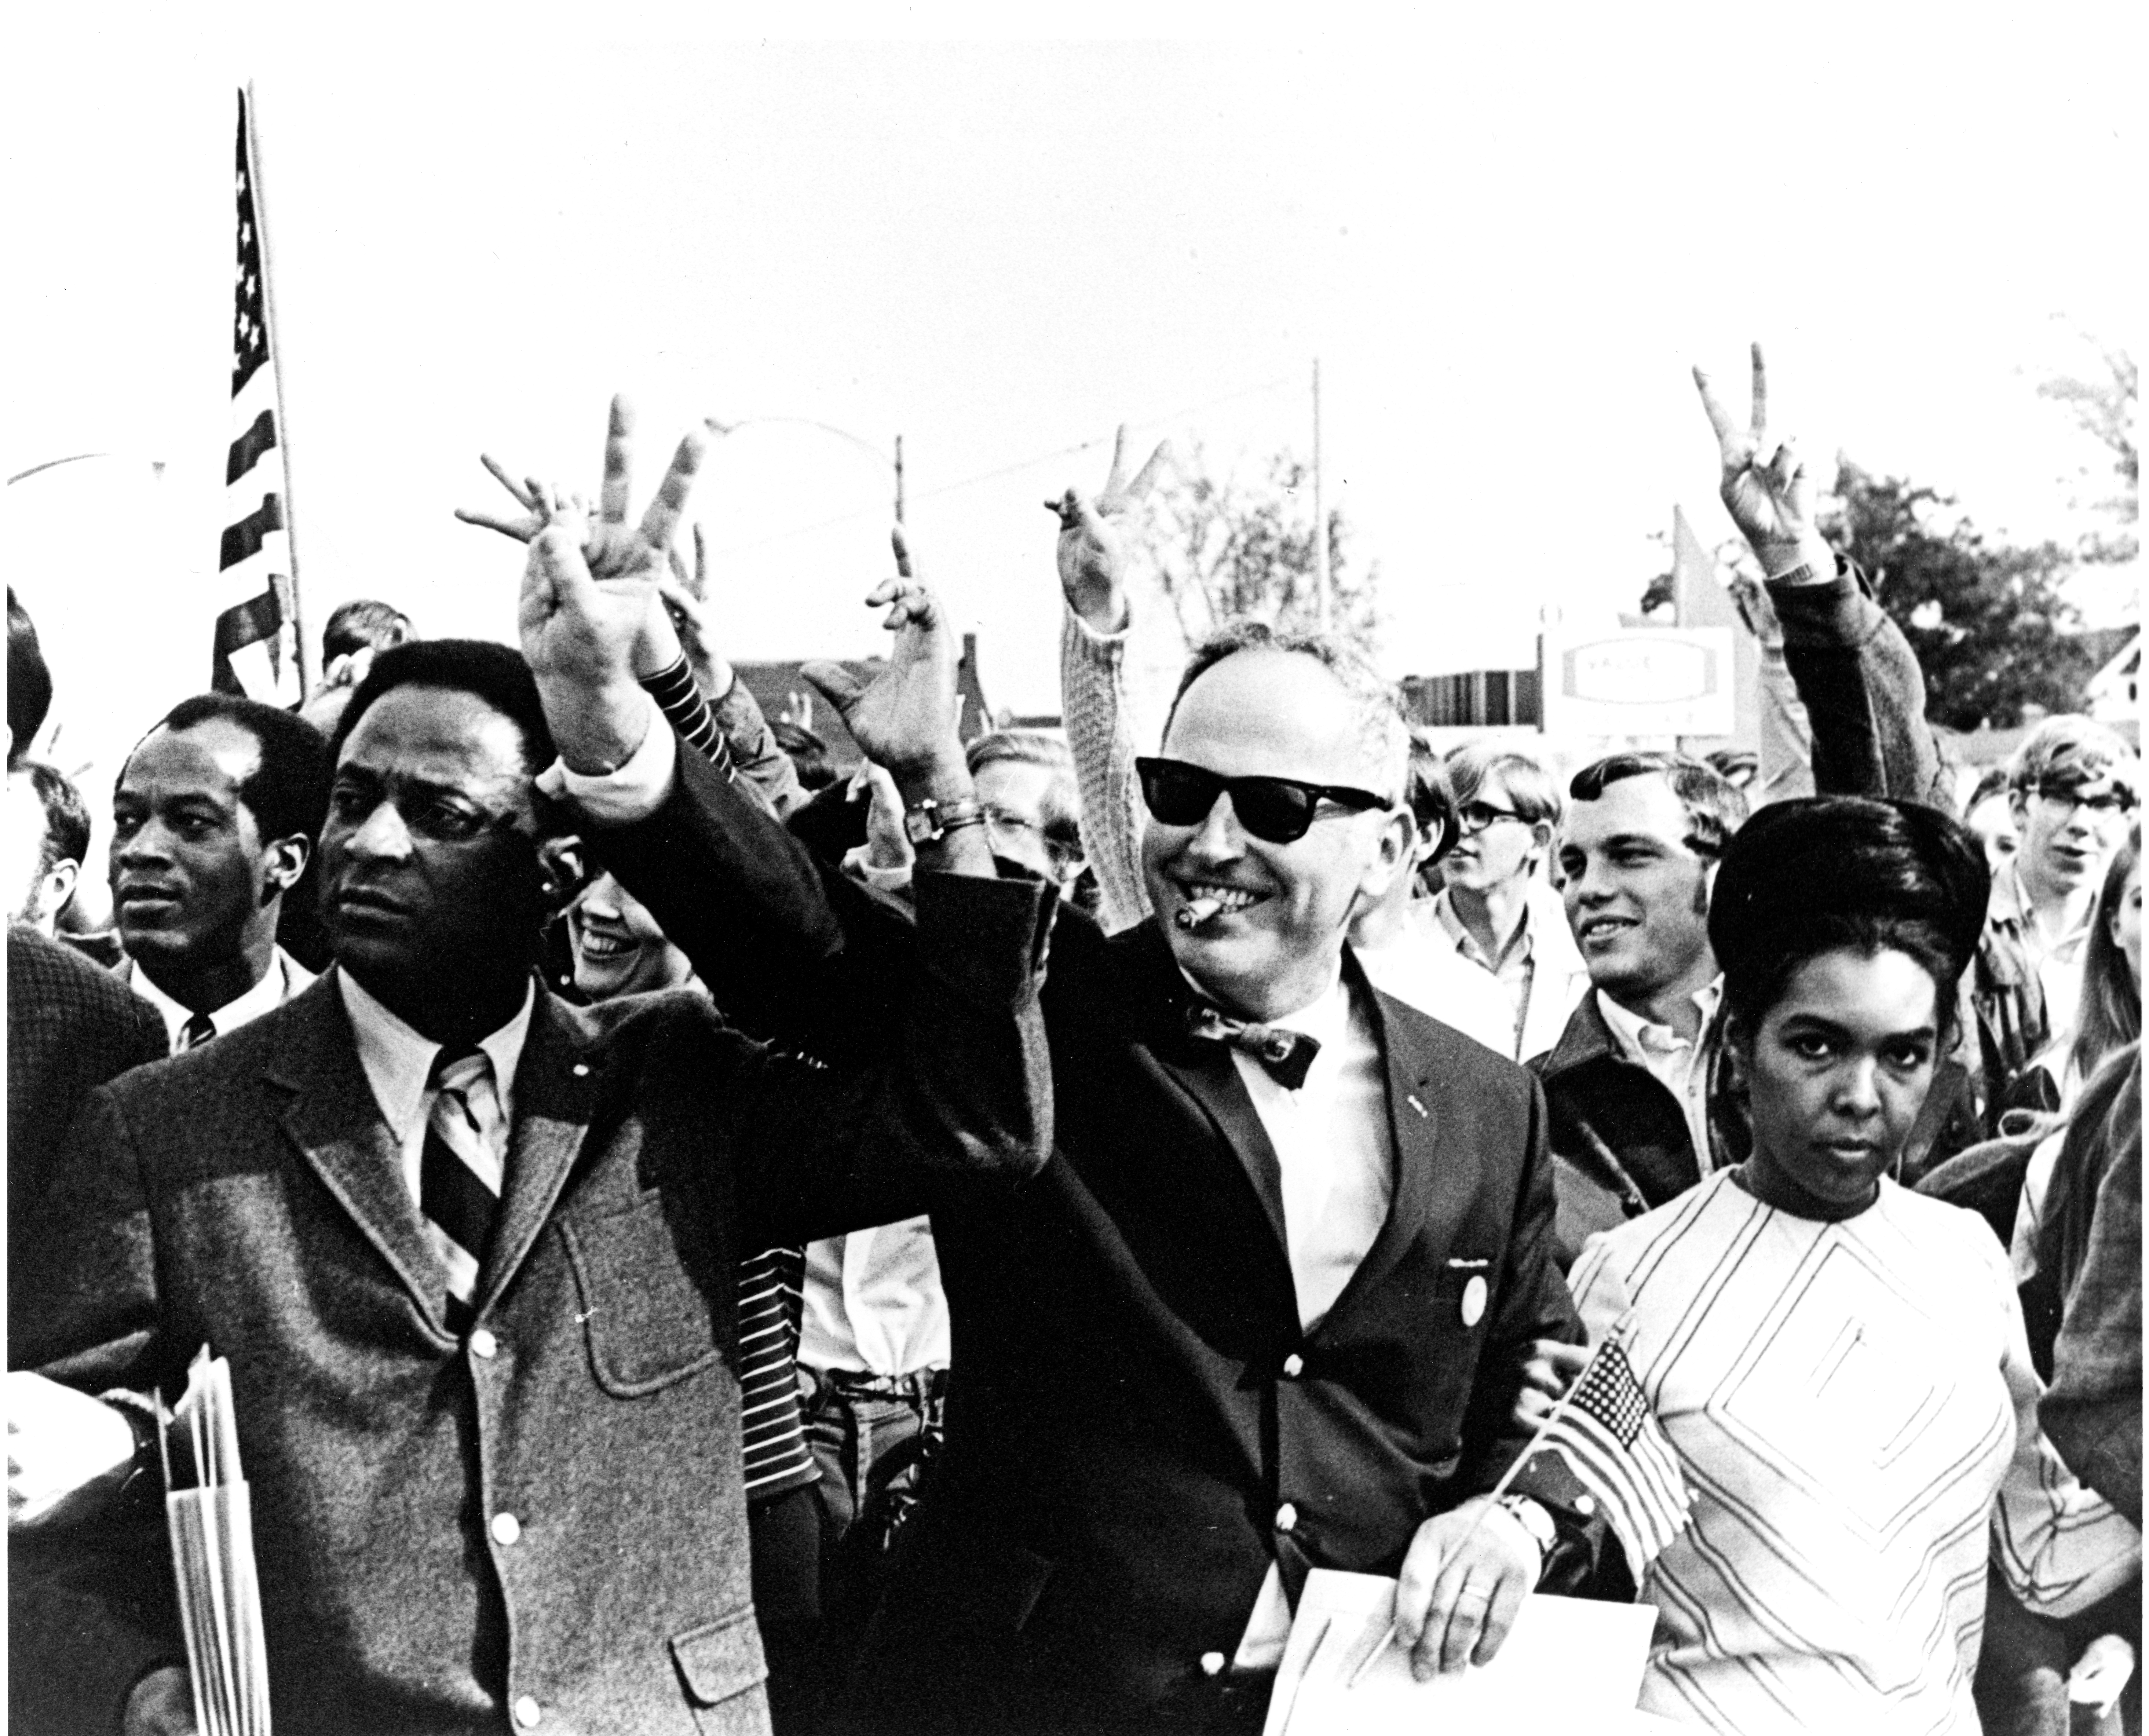 Walter Adams with protestors for peace, 1969